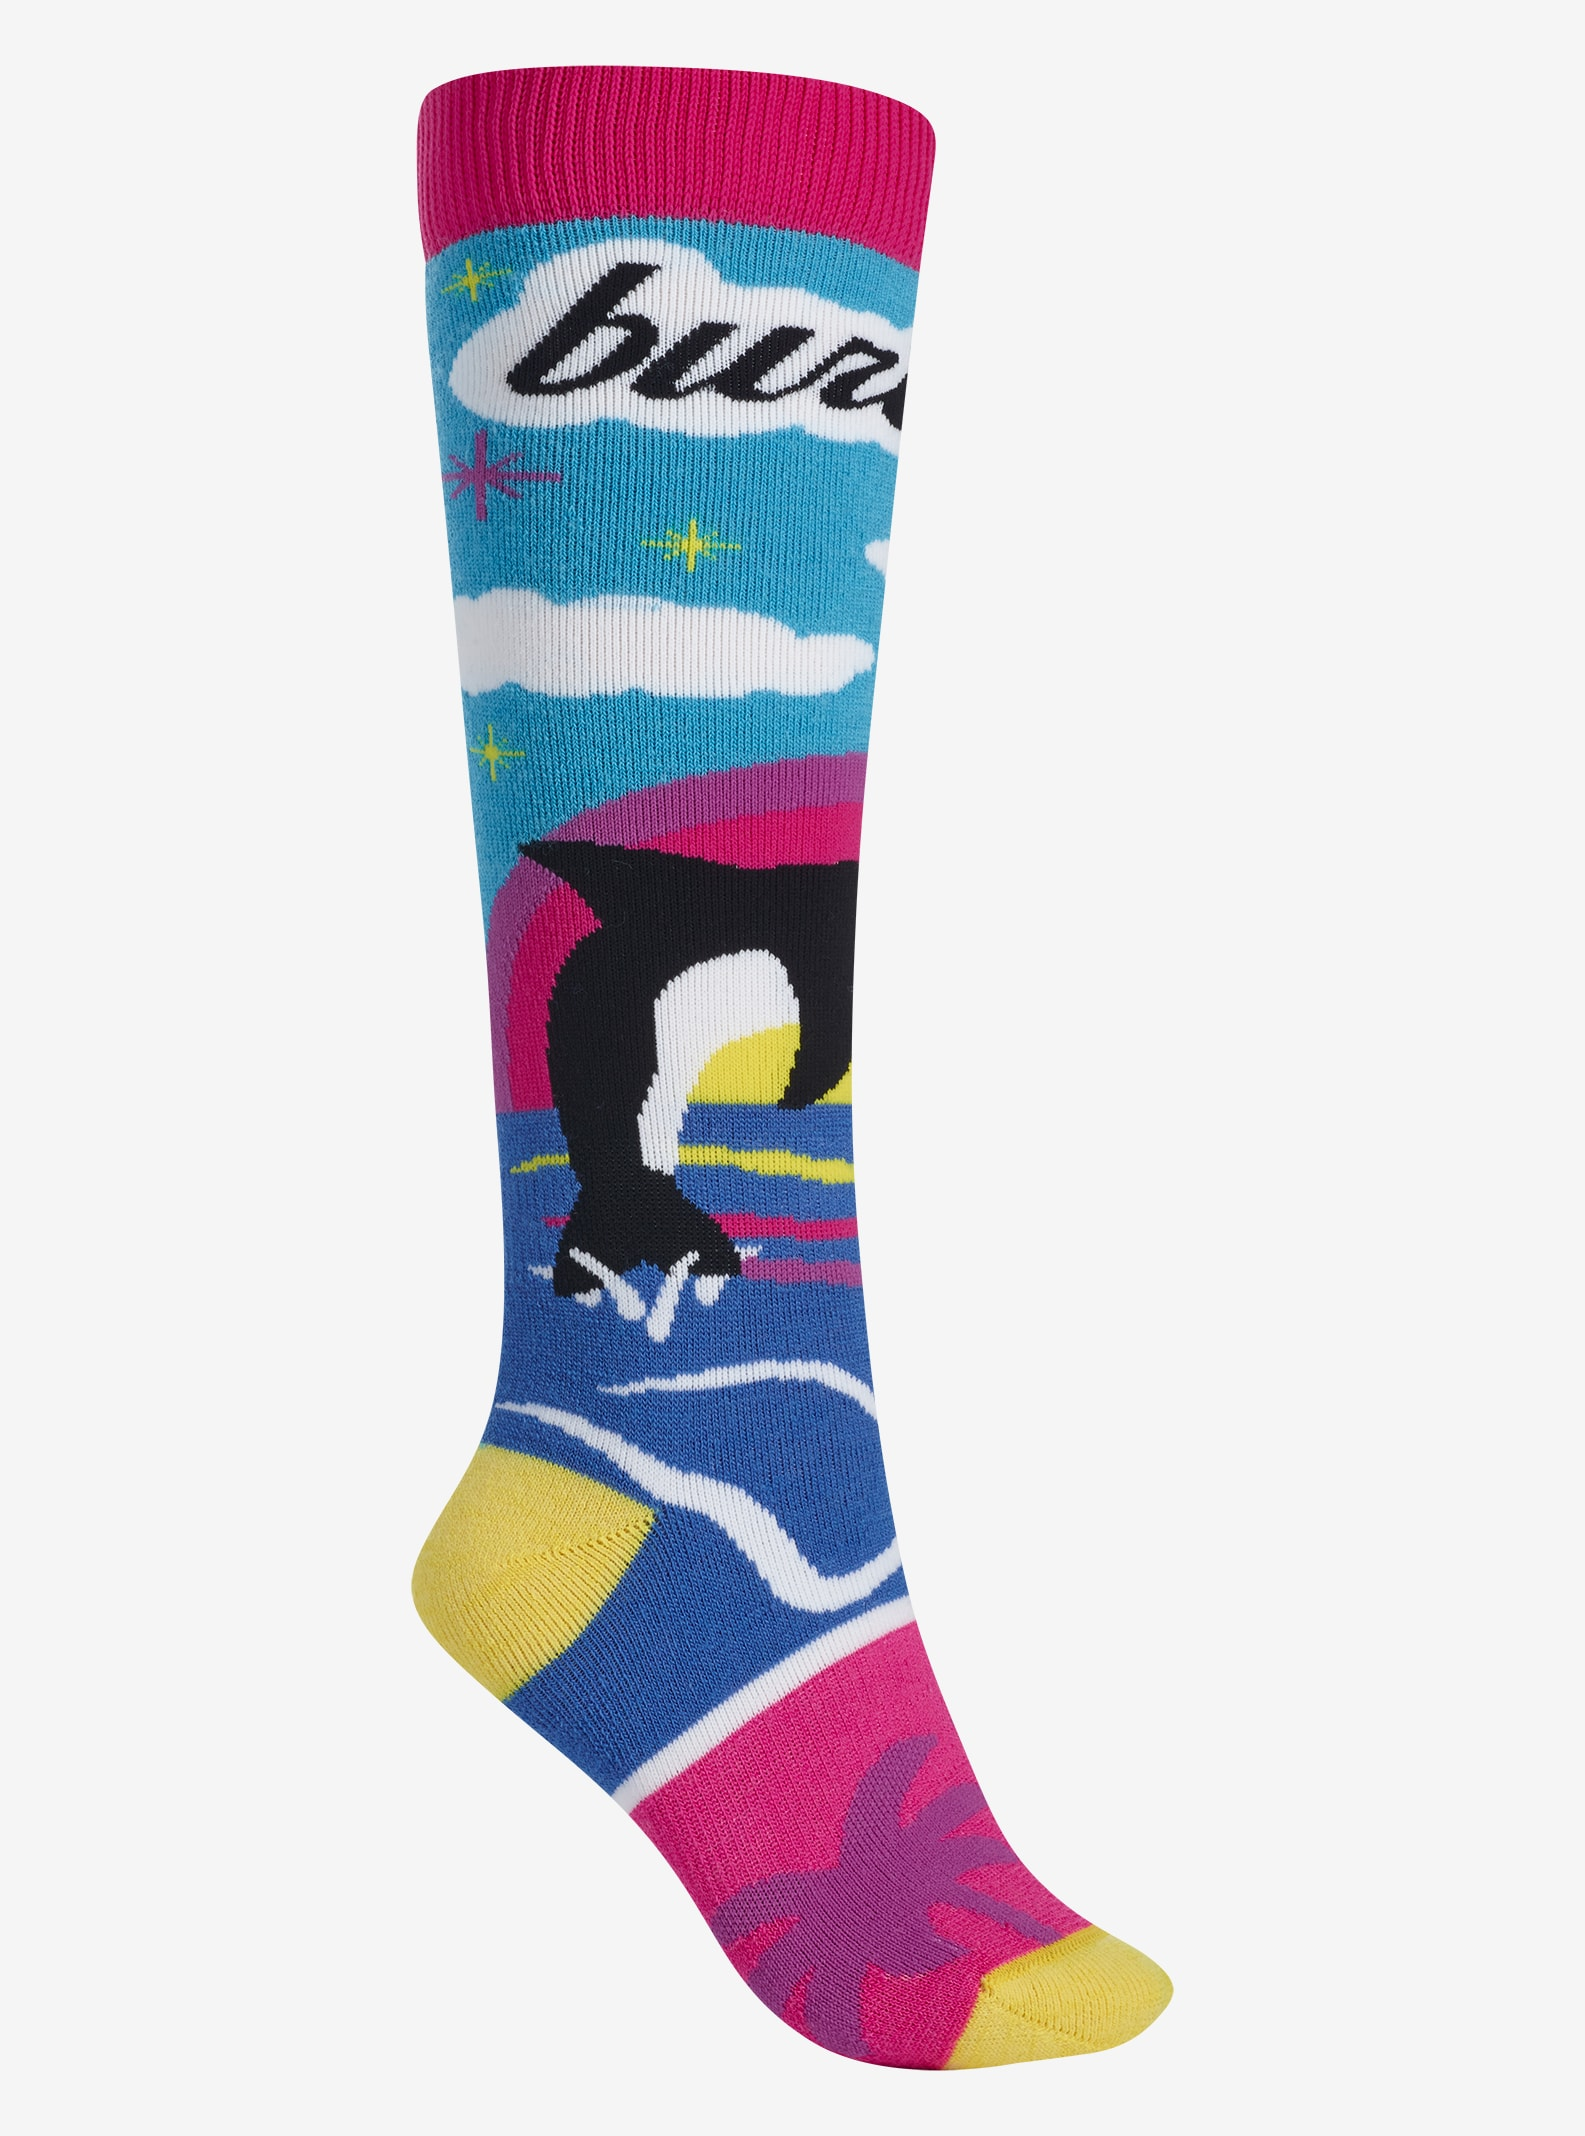 Women's Burton Party Sock shown in Beach Scene